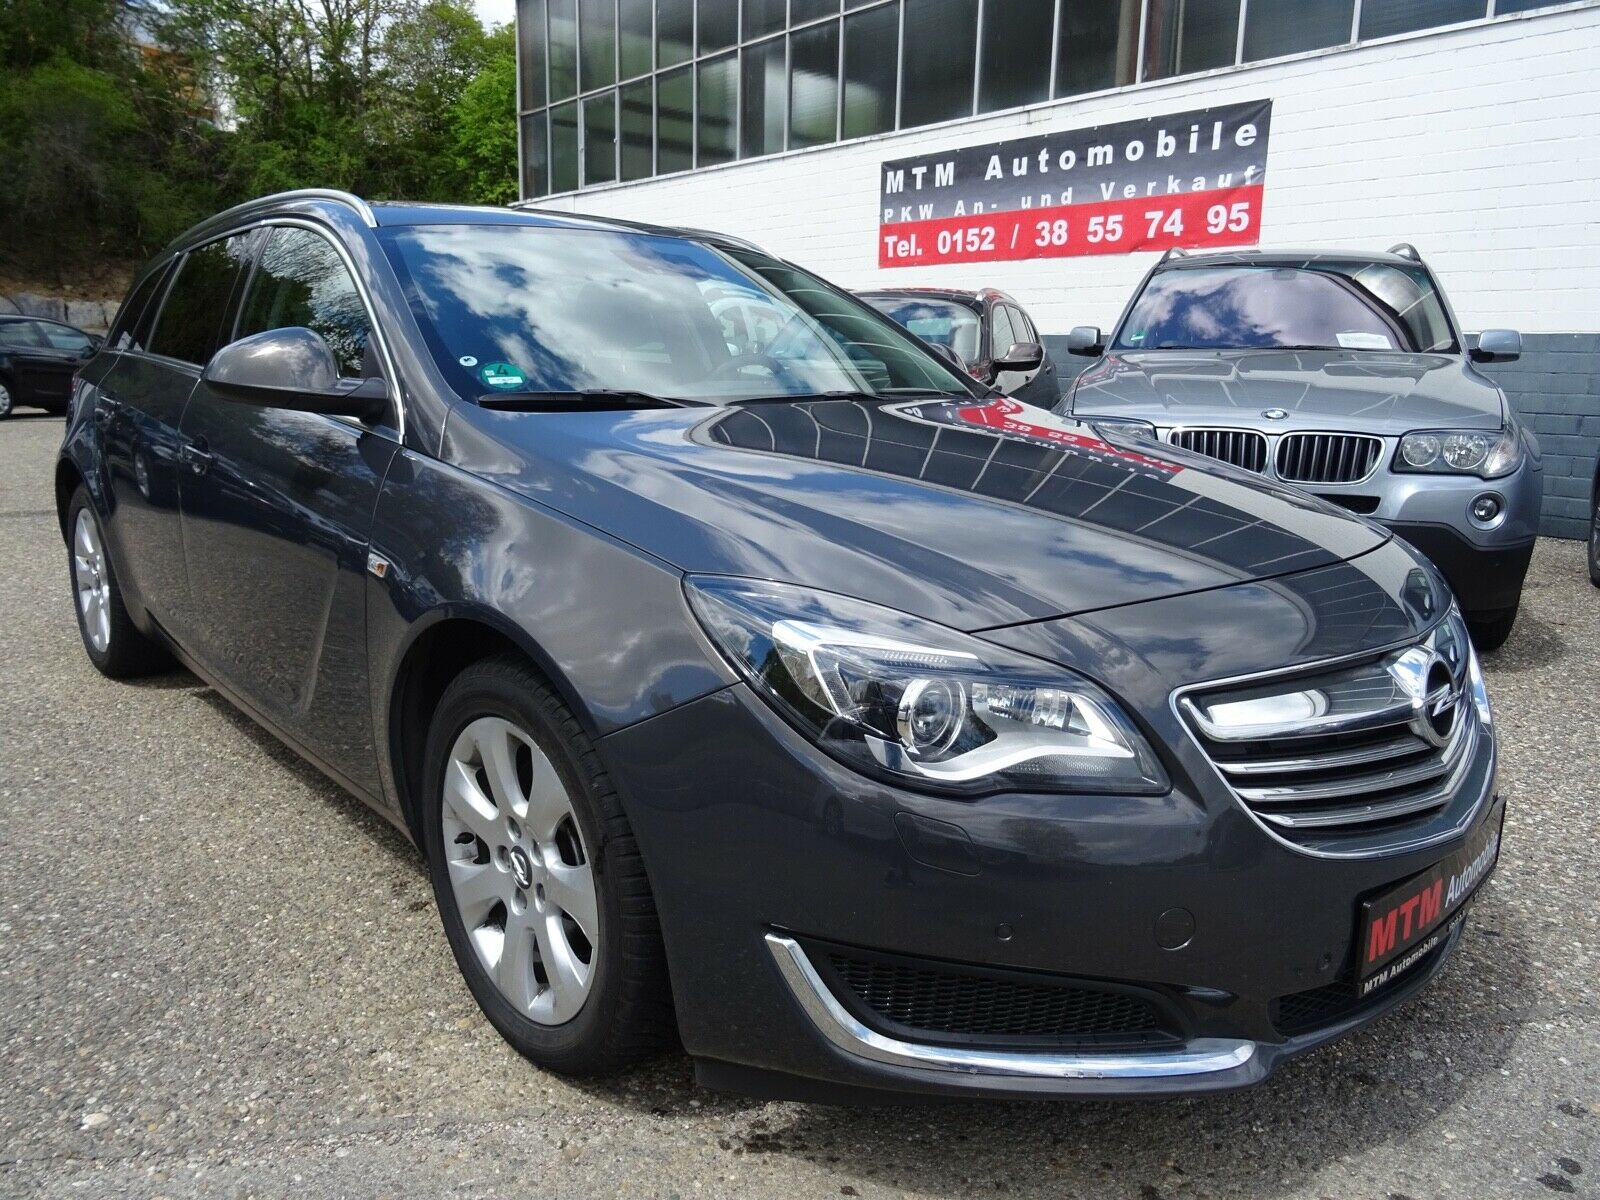 OPEL Insignia A 2.0 CDTI Sports Tourer Innovation